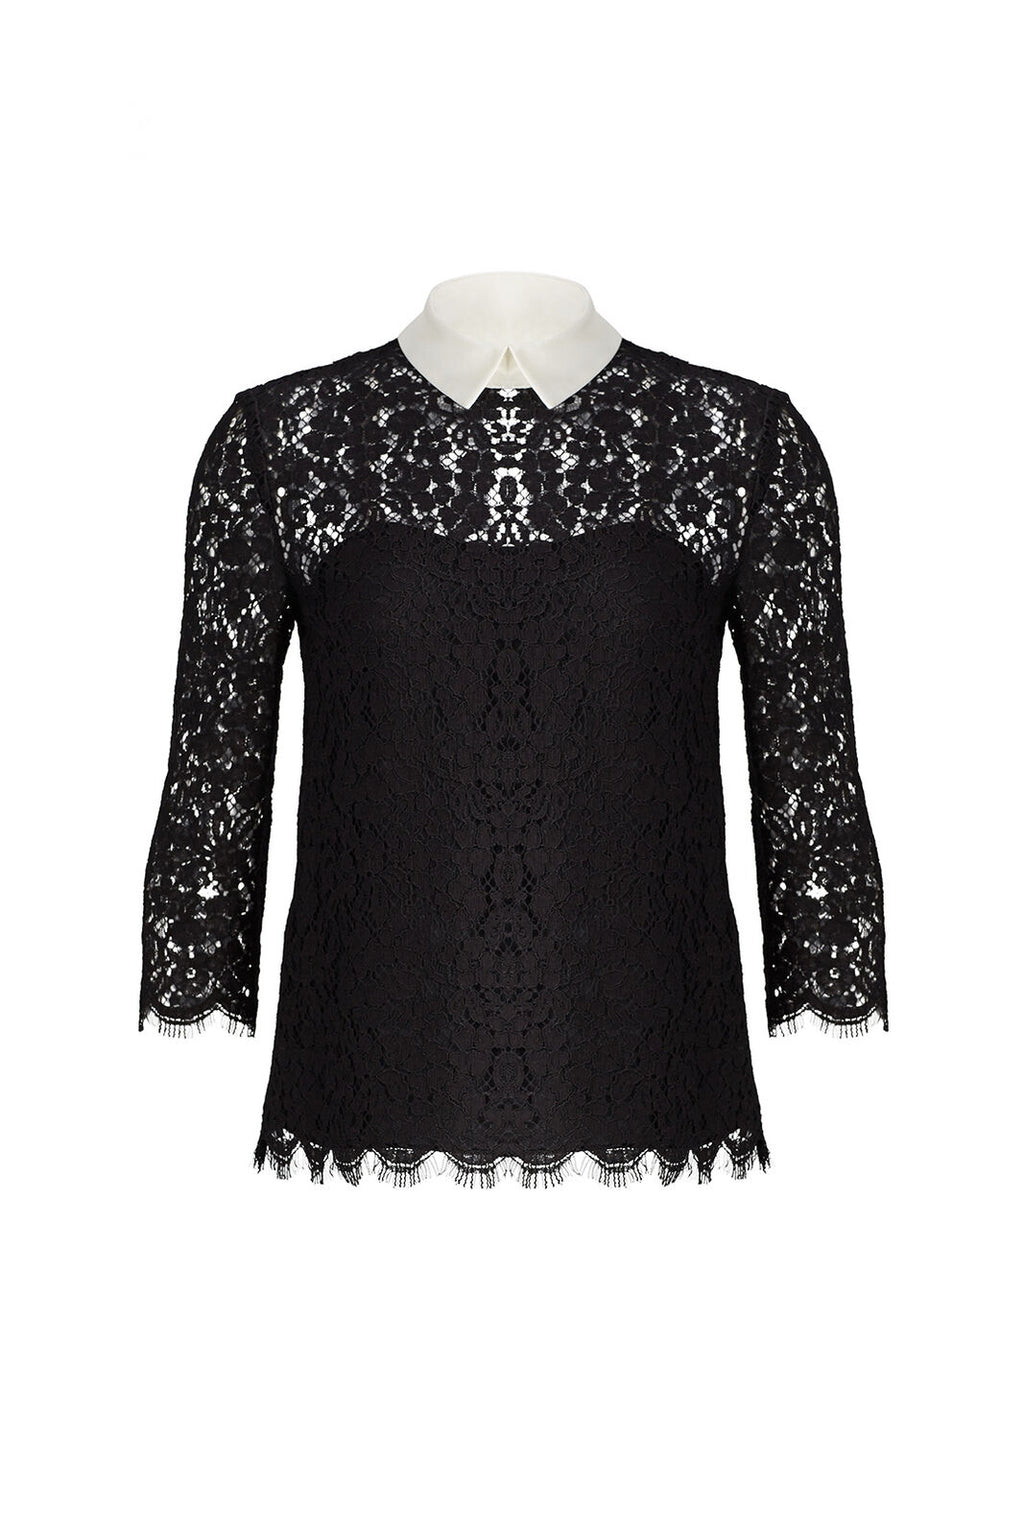 Black Blouse Floral Eyelash Lace Collar $345-